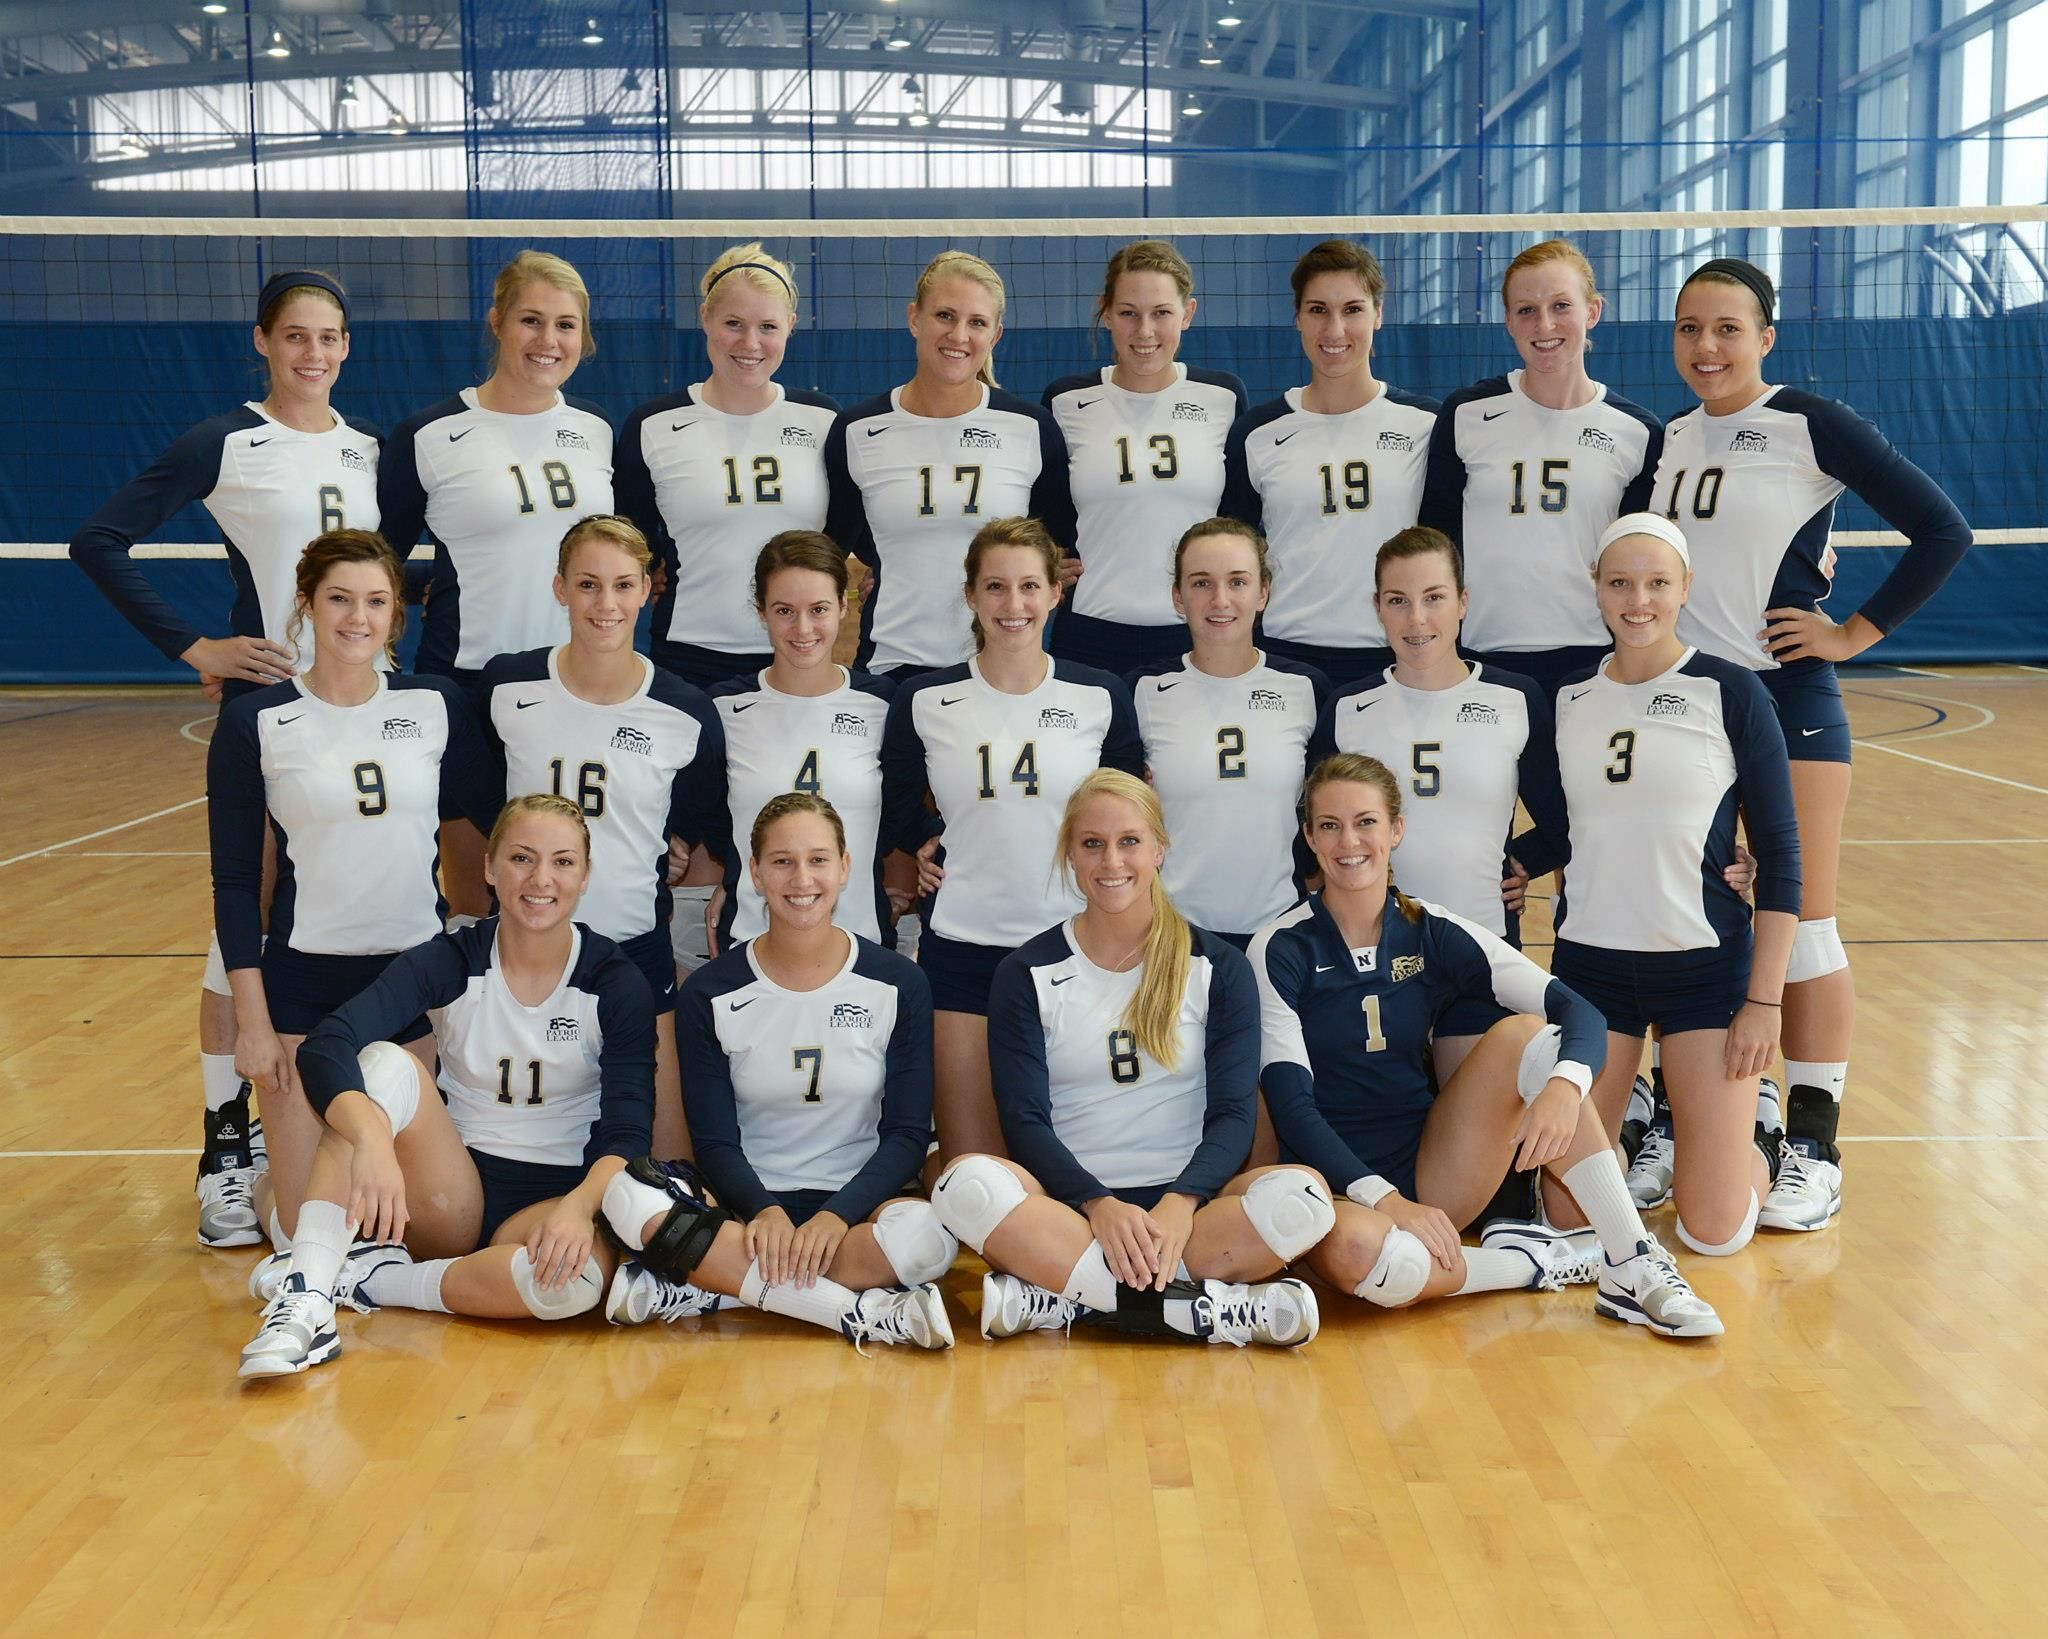 2012 Navy Volleyball Team Team Pictures Naval Academy United States Naval Academy